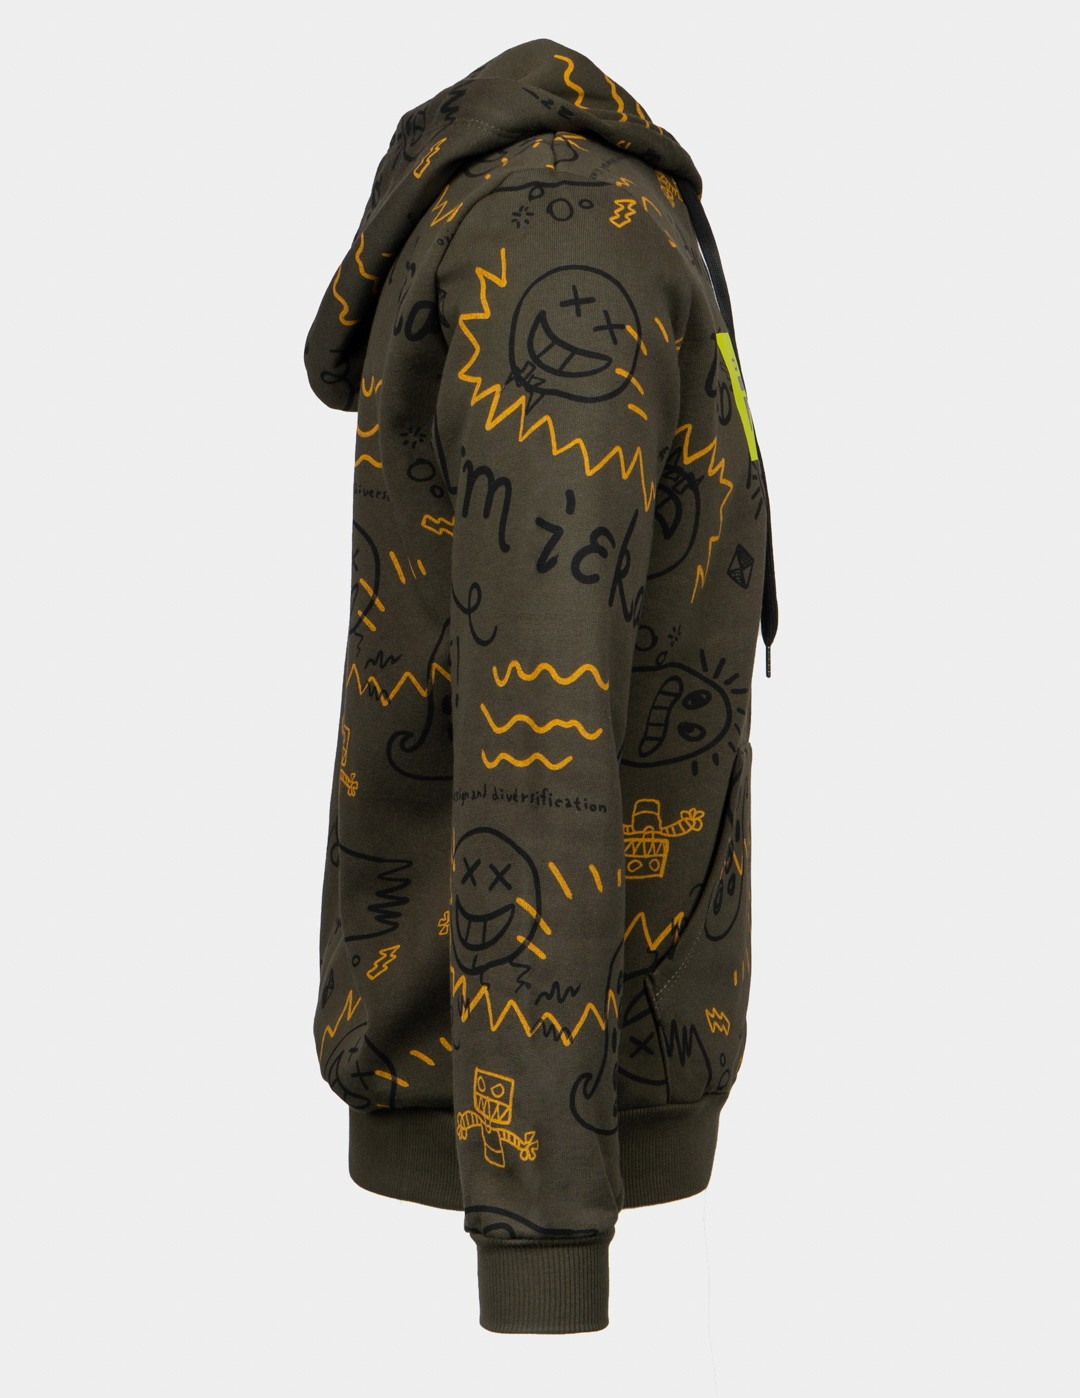 MONSTER COMPANY Hoodie Olive Green